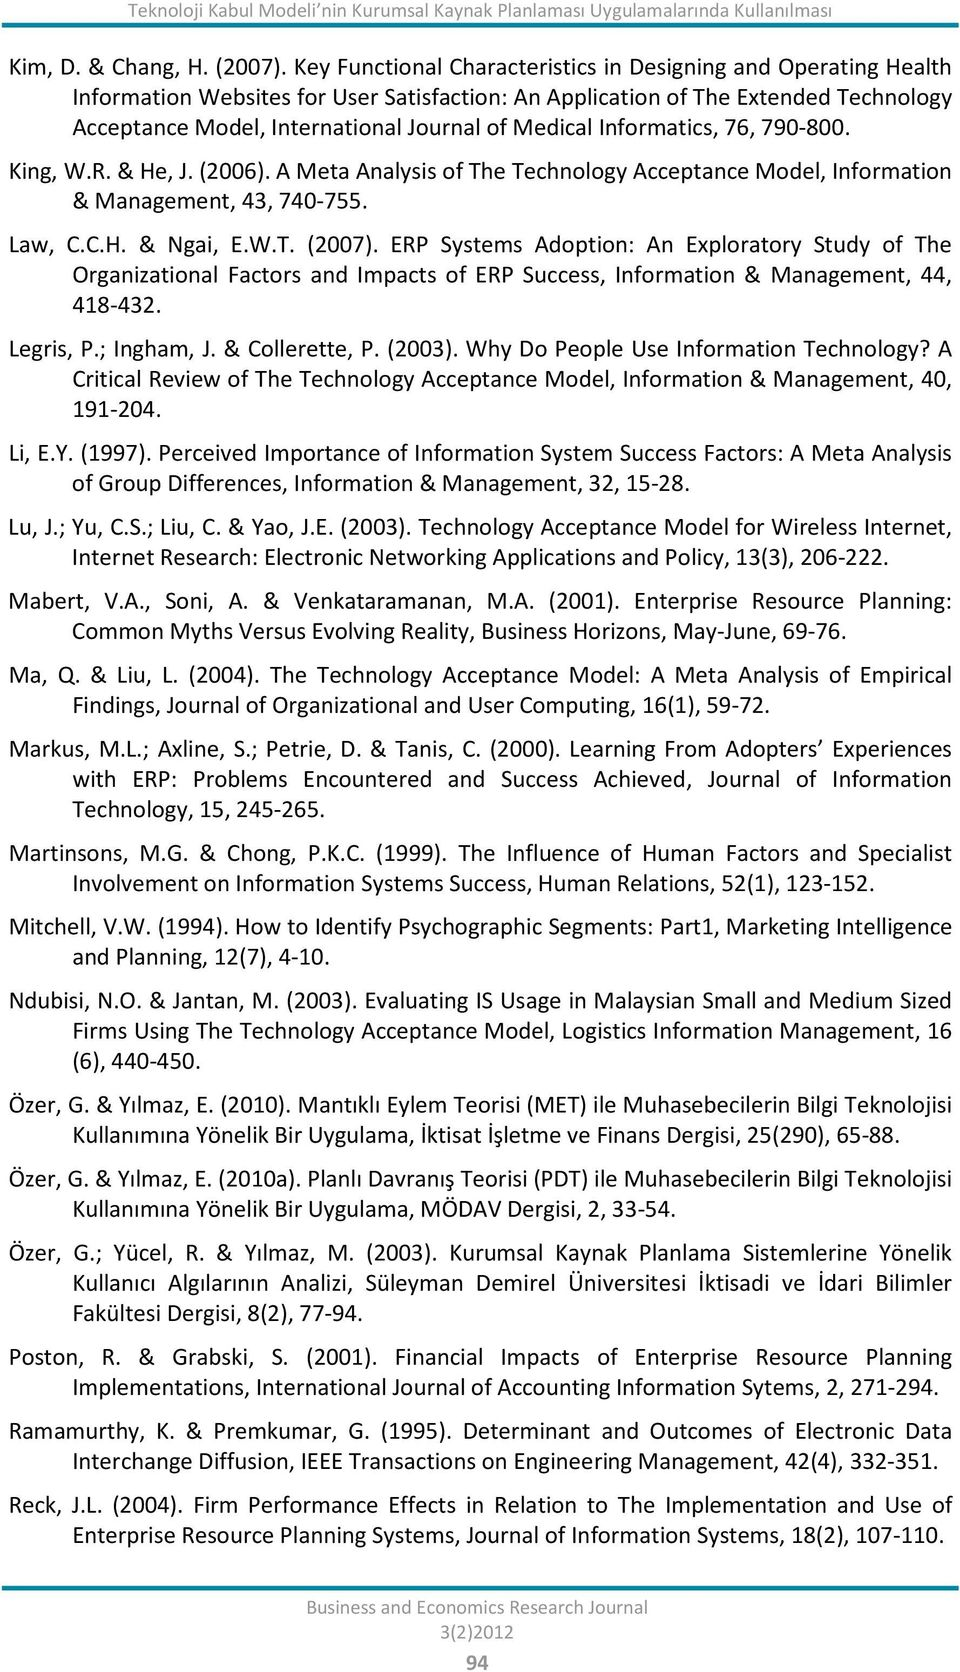 Medical Informatics, 76, 790-800. King, W.R. & He, J. (2006). A Meta Analysis of The Technology Acceptance Model, Information & Management, 43, 740-755. Law, C.C.H. & Ngai, E.W.T. (2007).